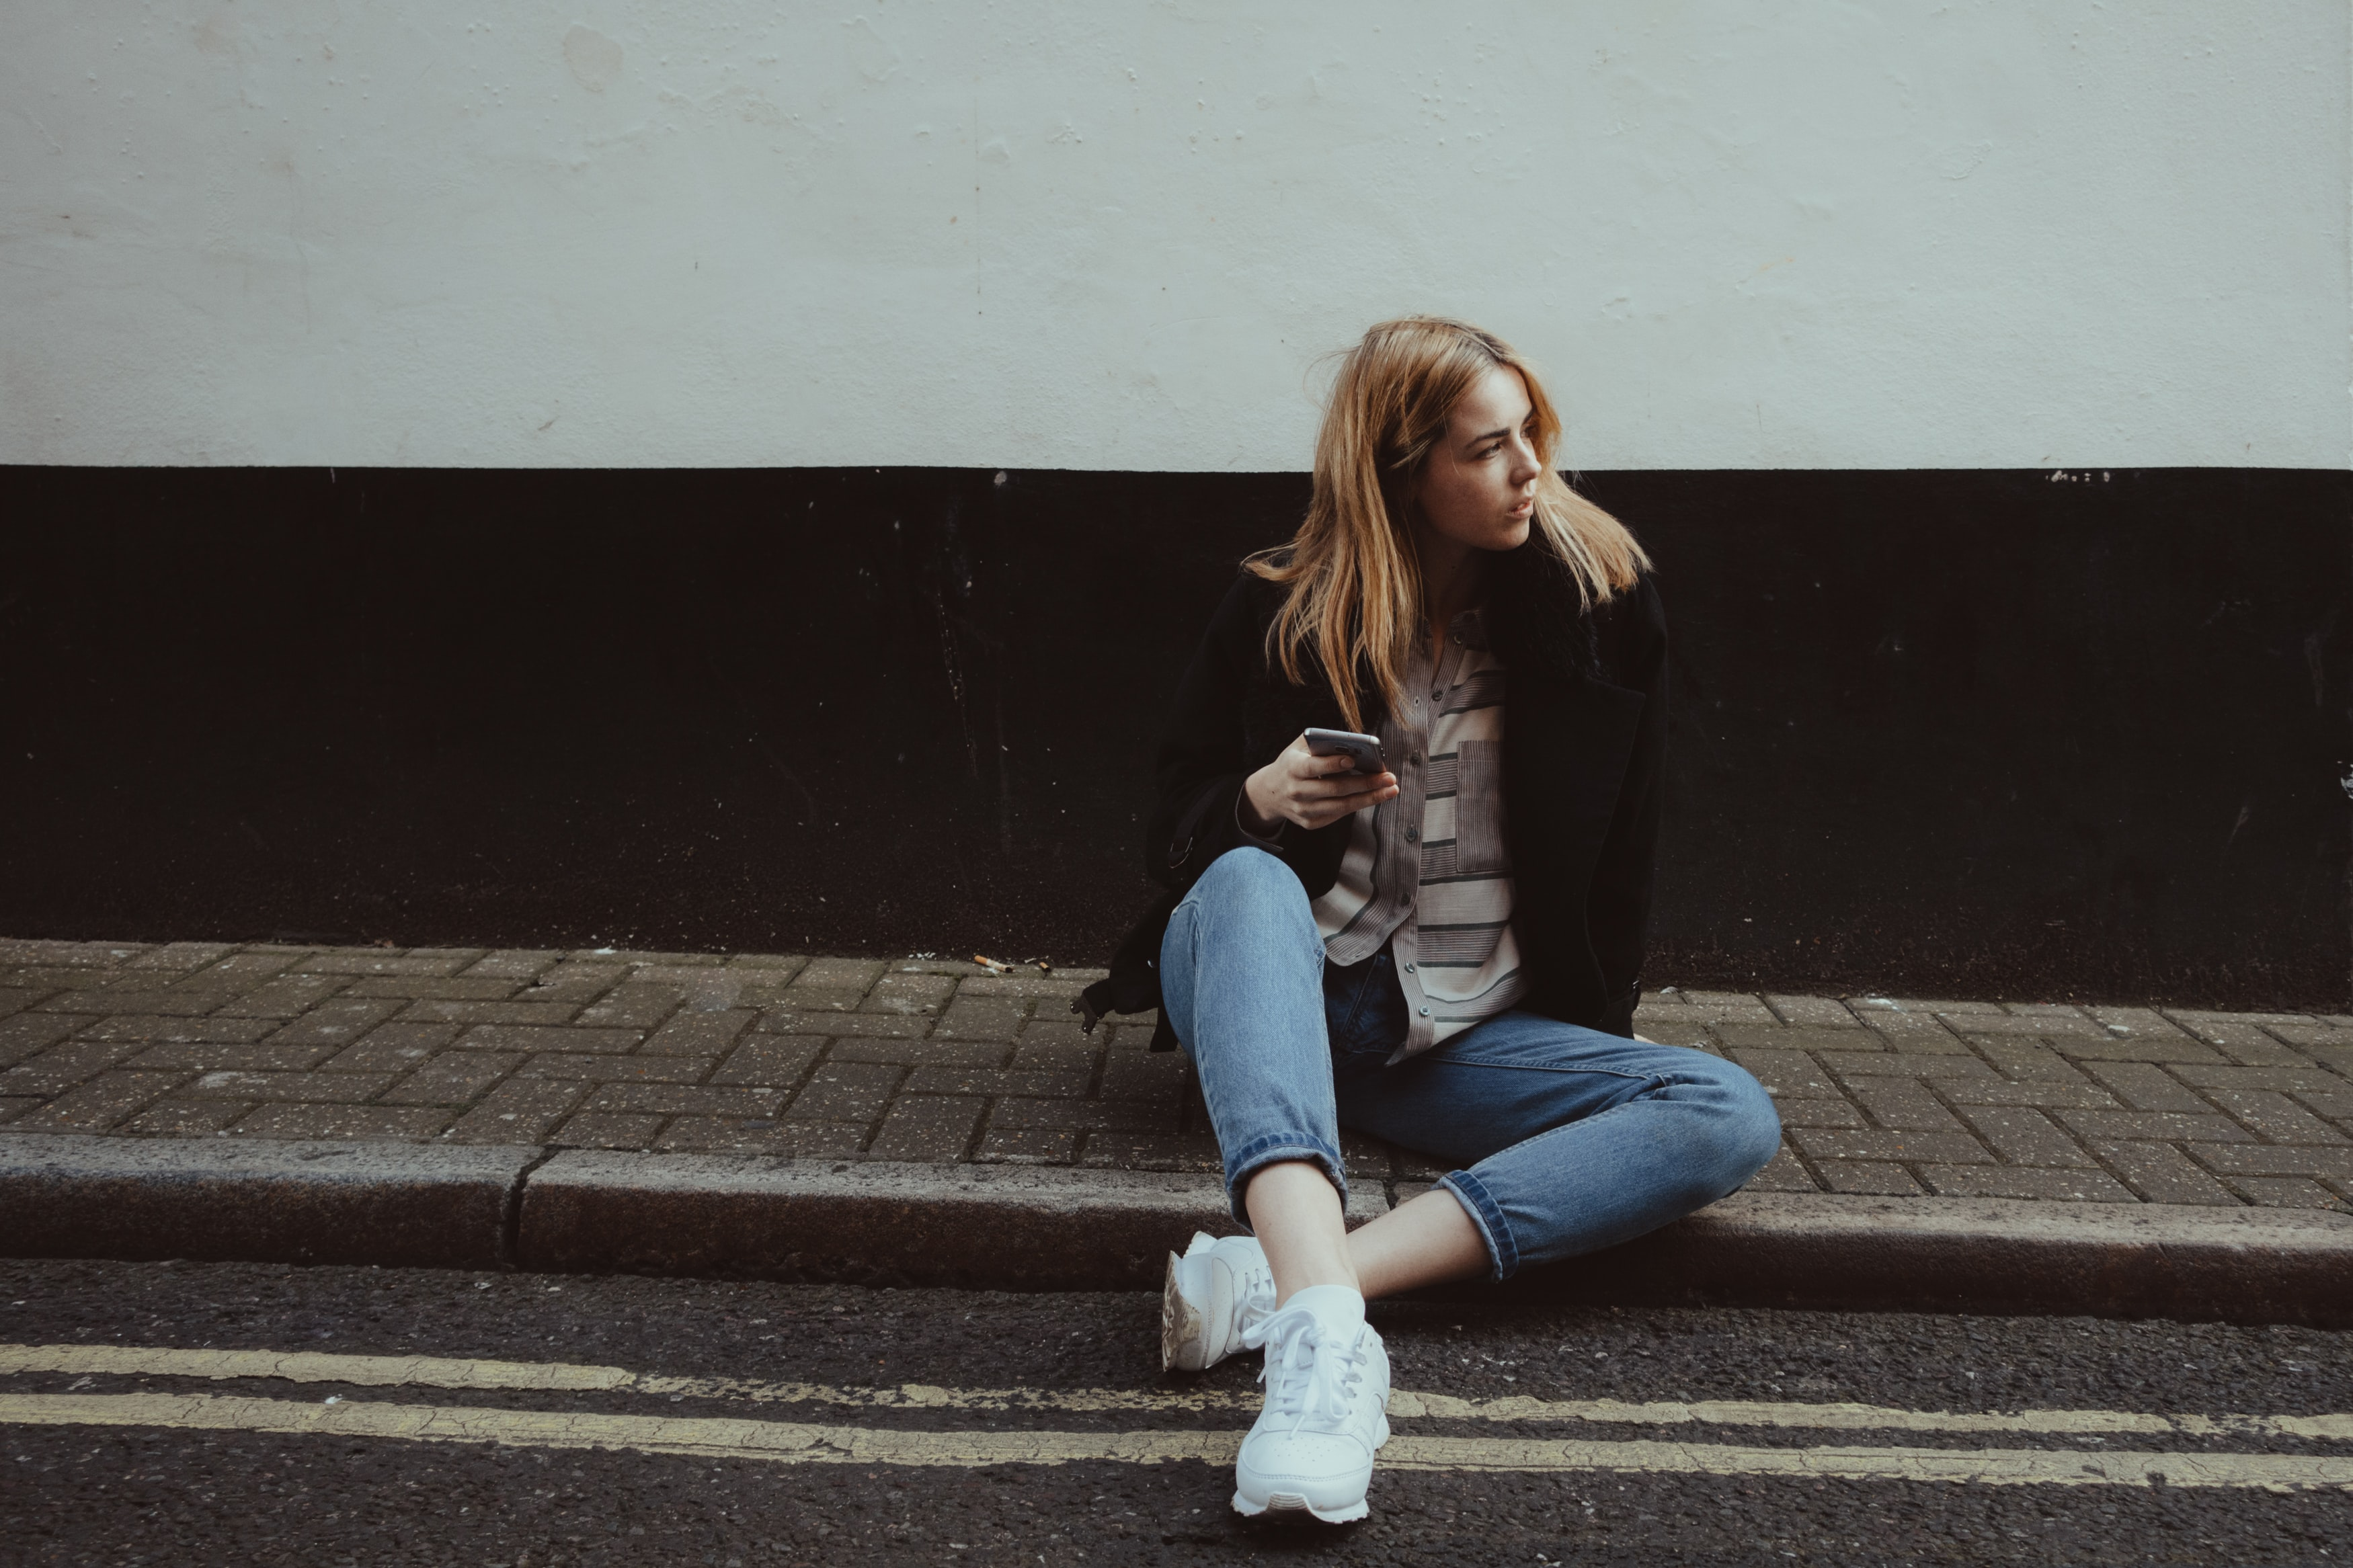 A blonde woman wearing a black jacket sitting on the curb in Marylebone